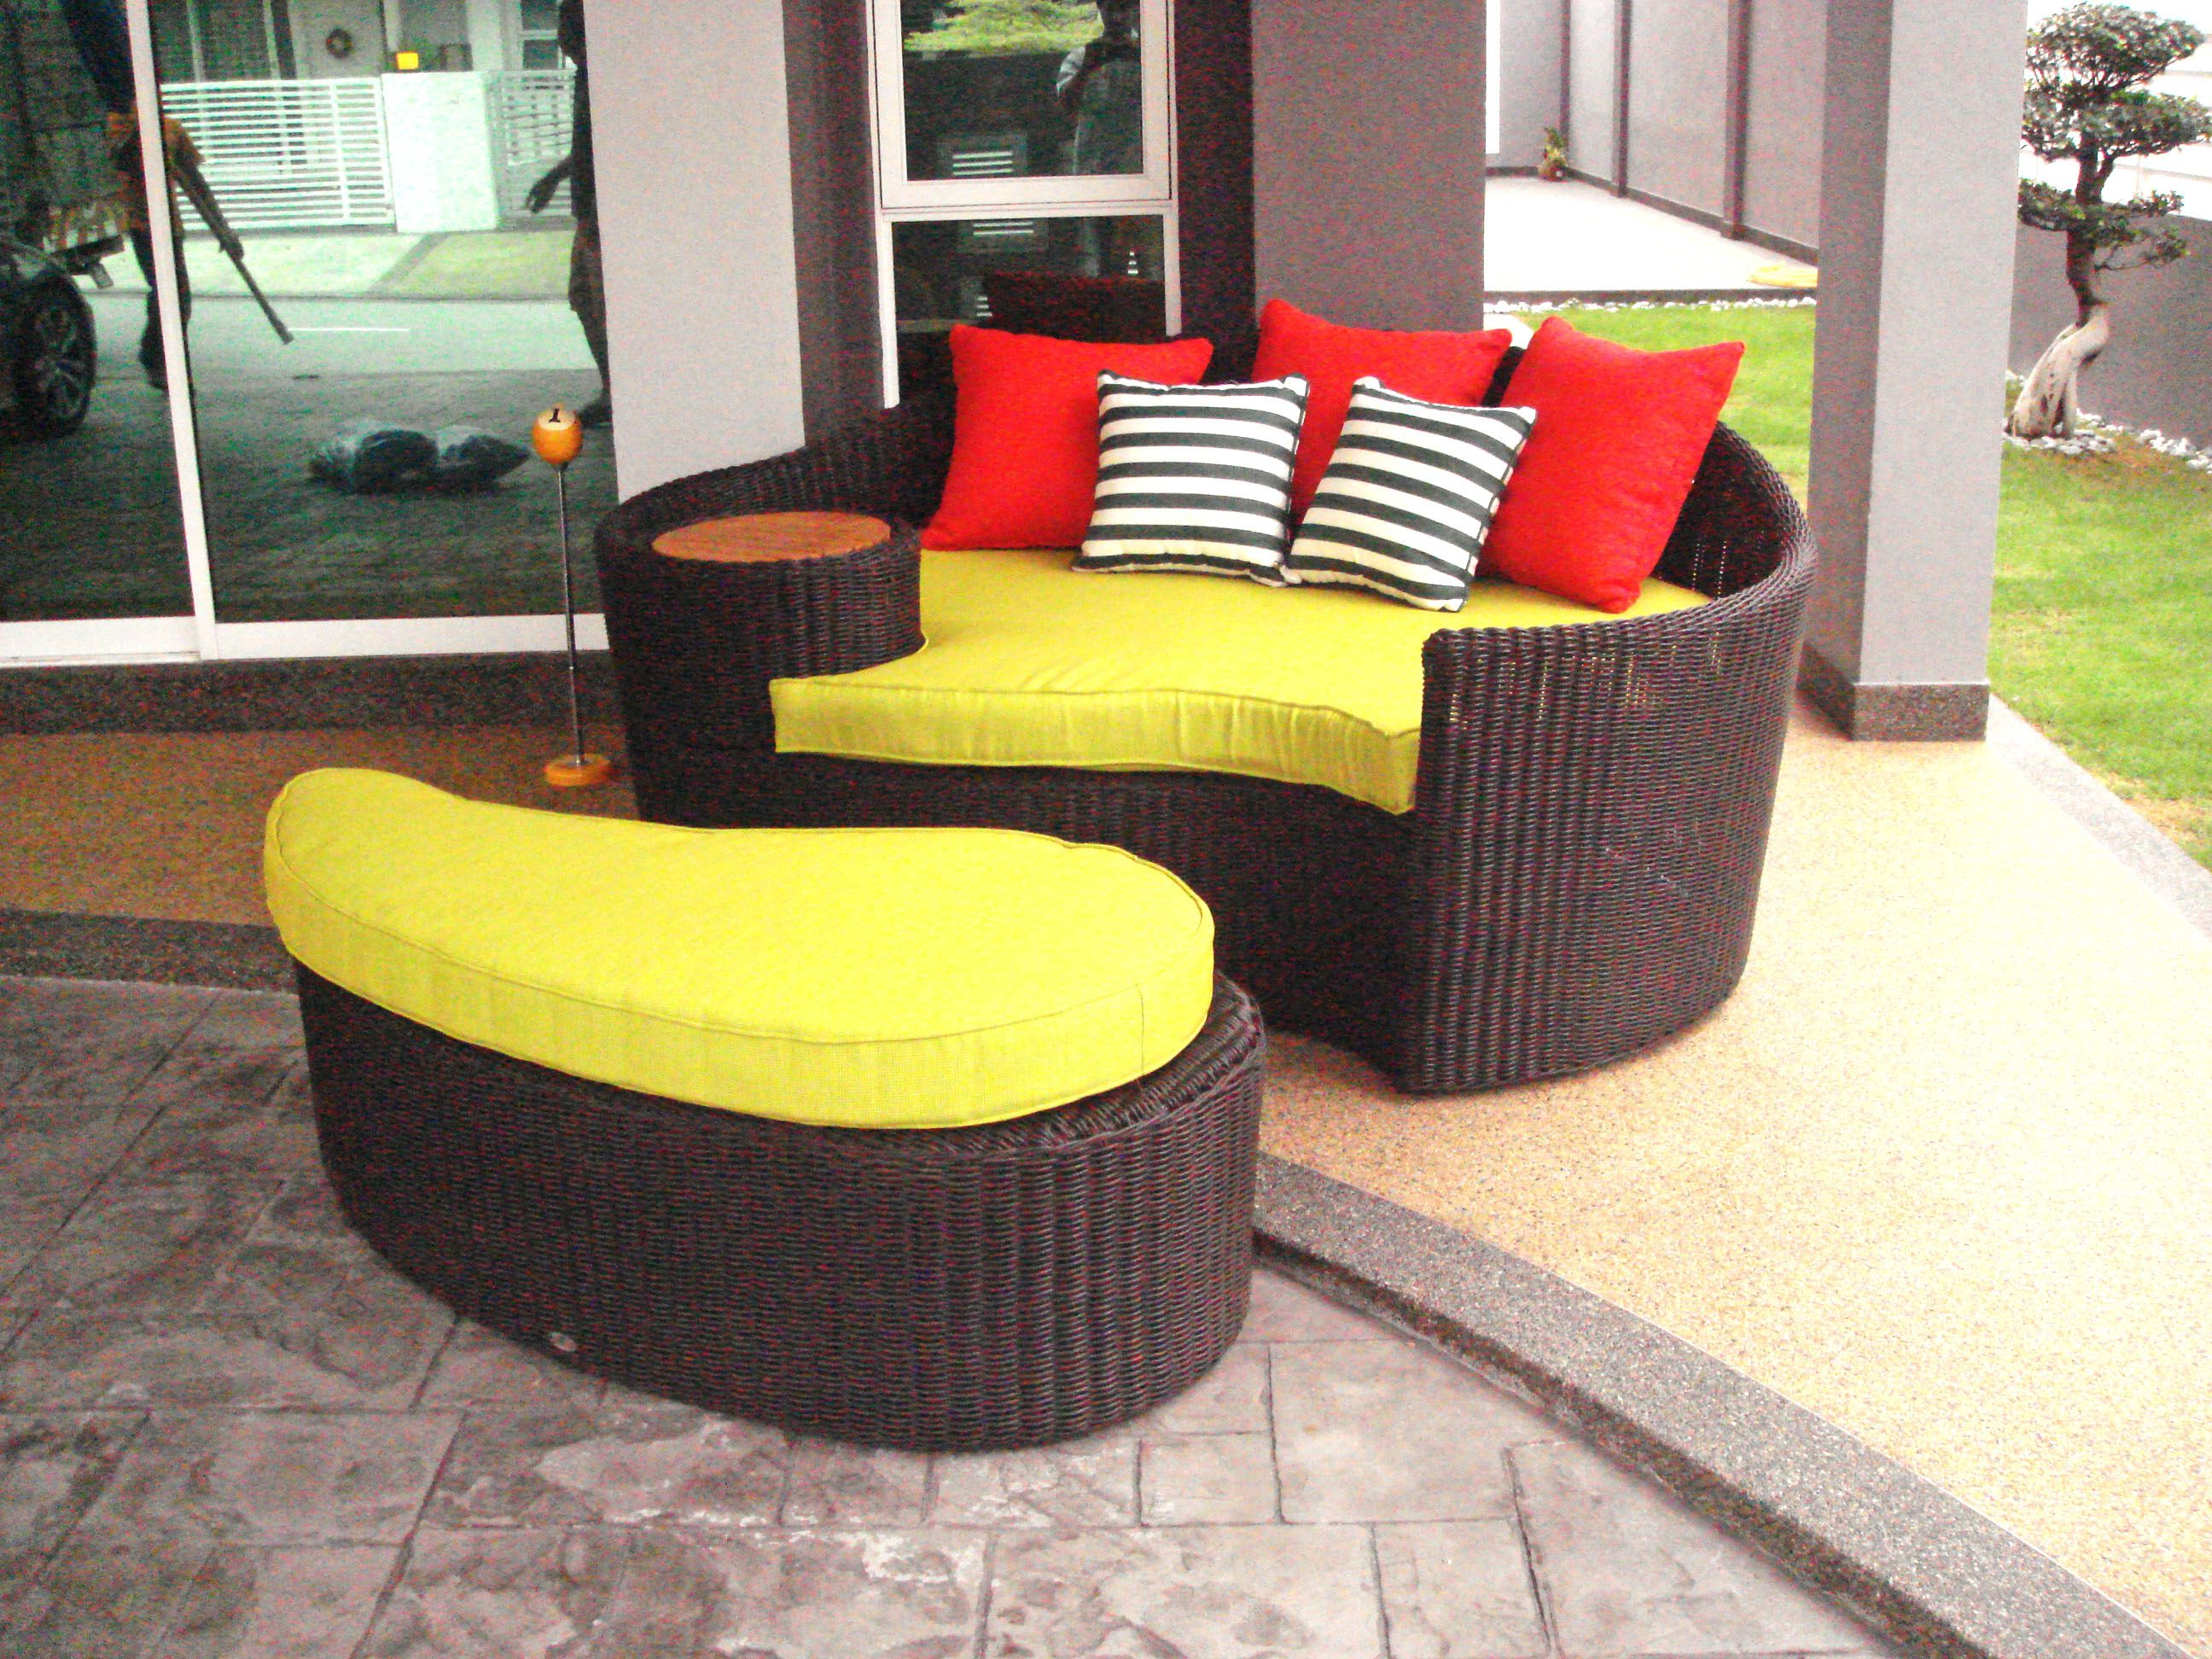 Bali daybed outdoor sofa teak furniture malaysia and indonesia